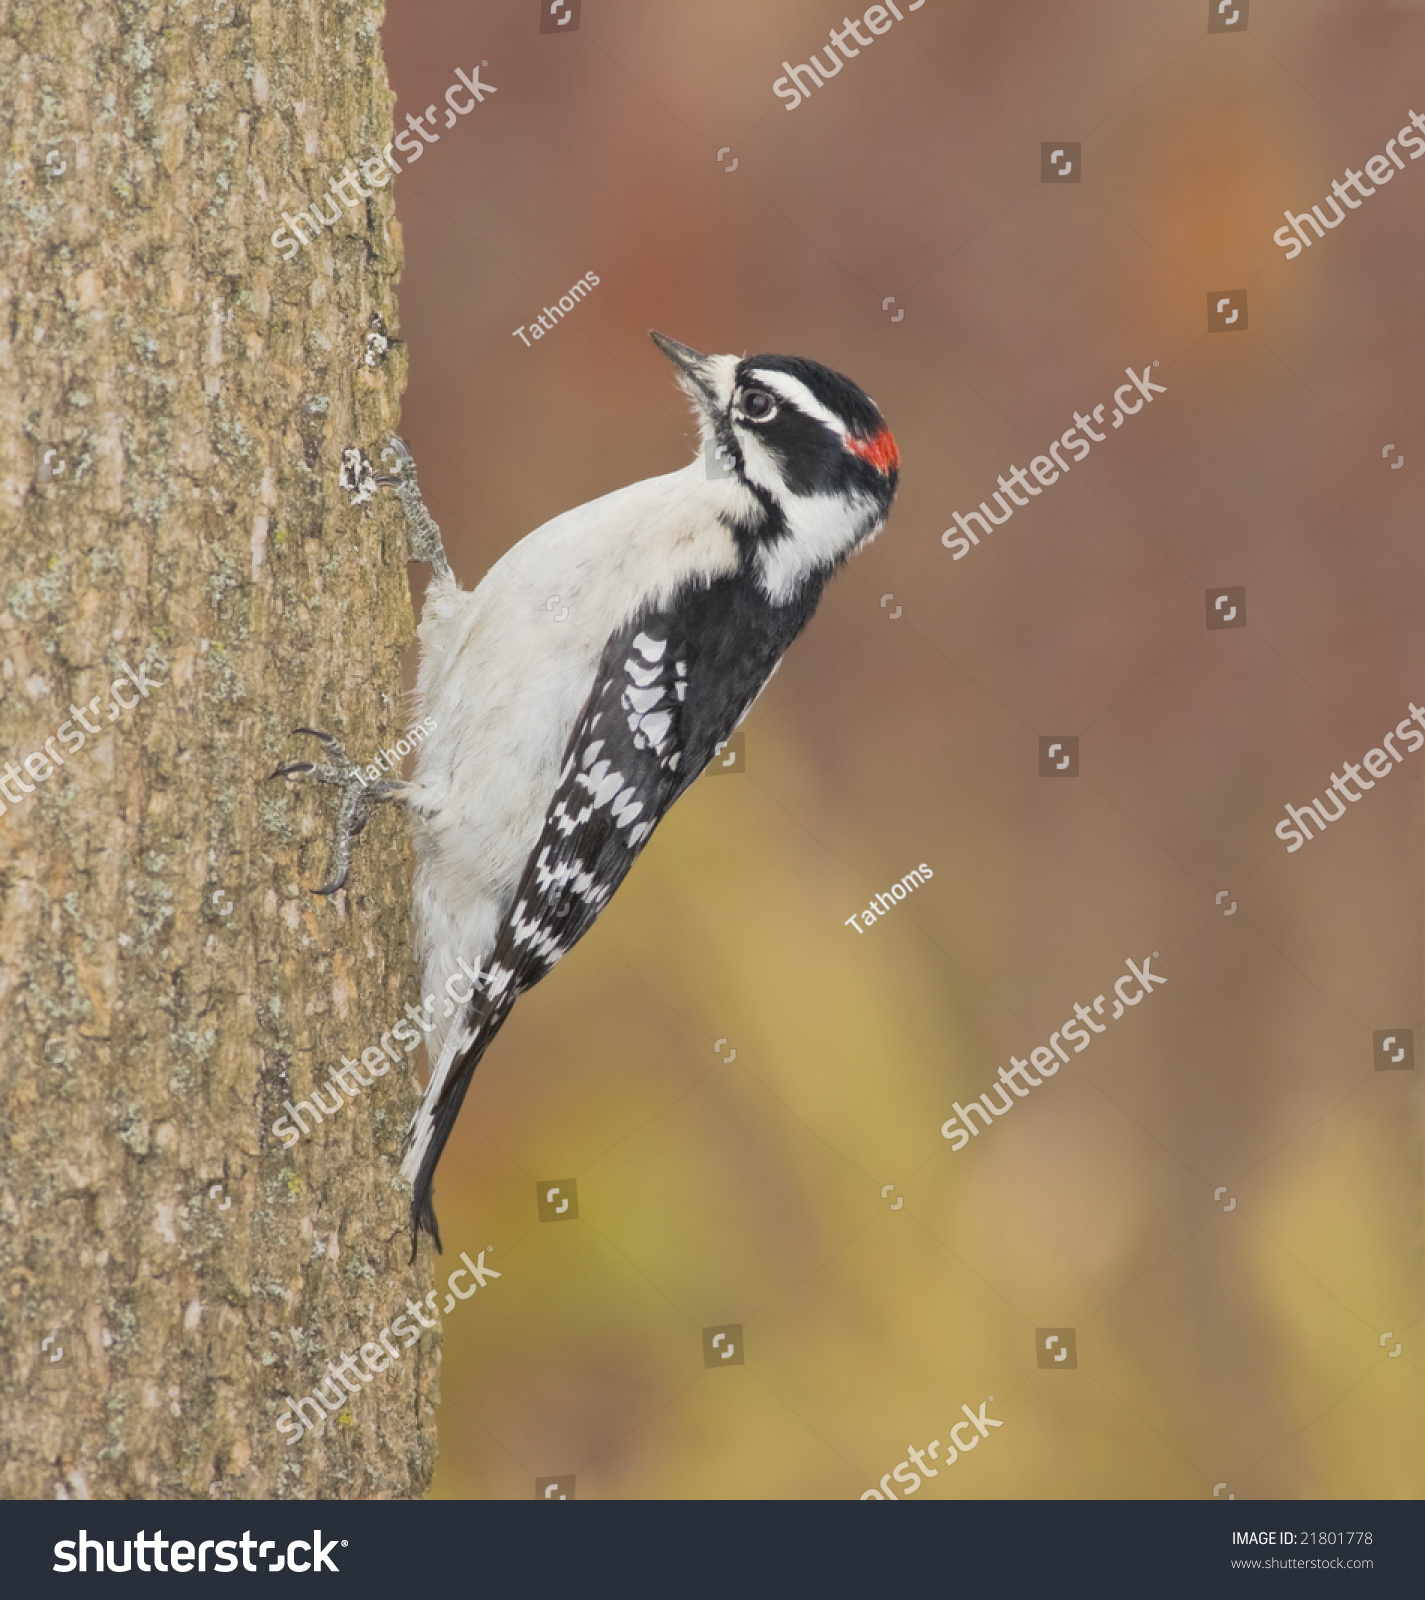 Downy woodpecker, male, Picoides pubescens. Copy space.